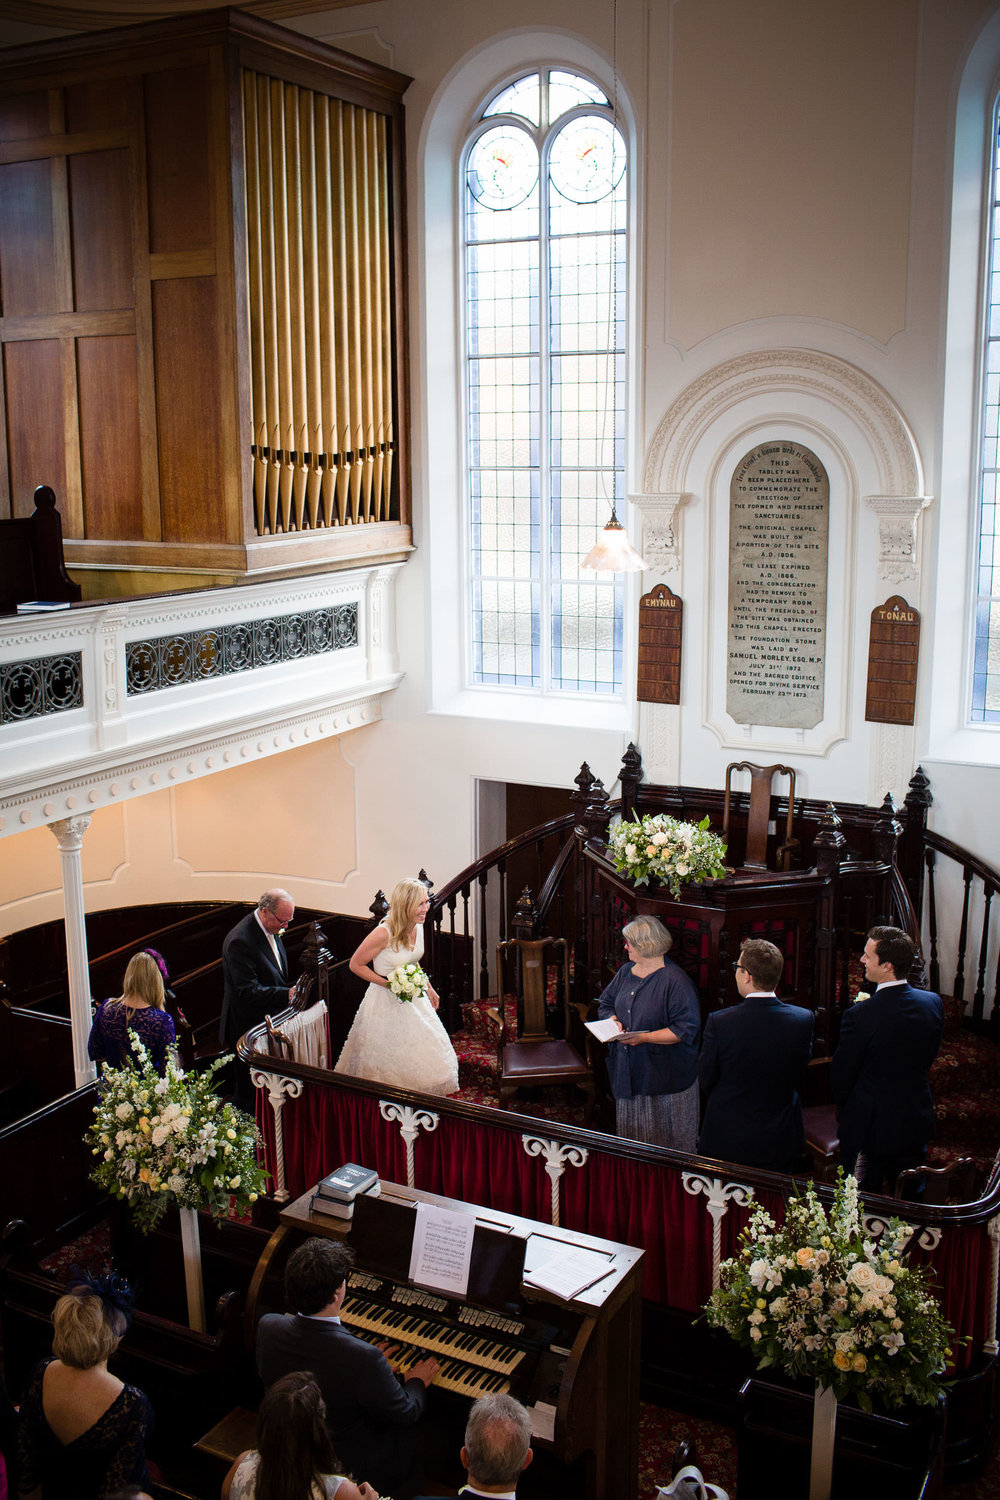 Fotografo de boda en Londres Welsh Chapel Borough - James Sturcke | sturcke.org_003.jpg